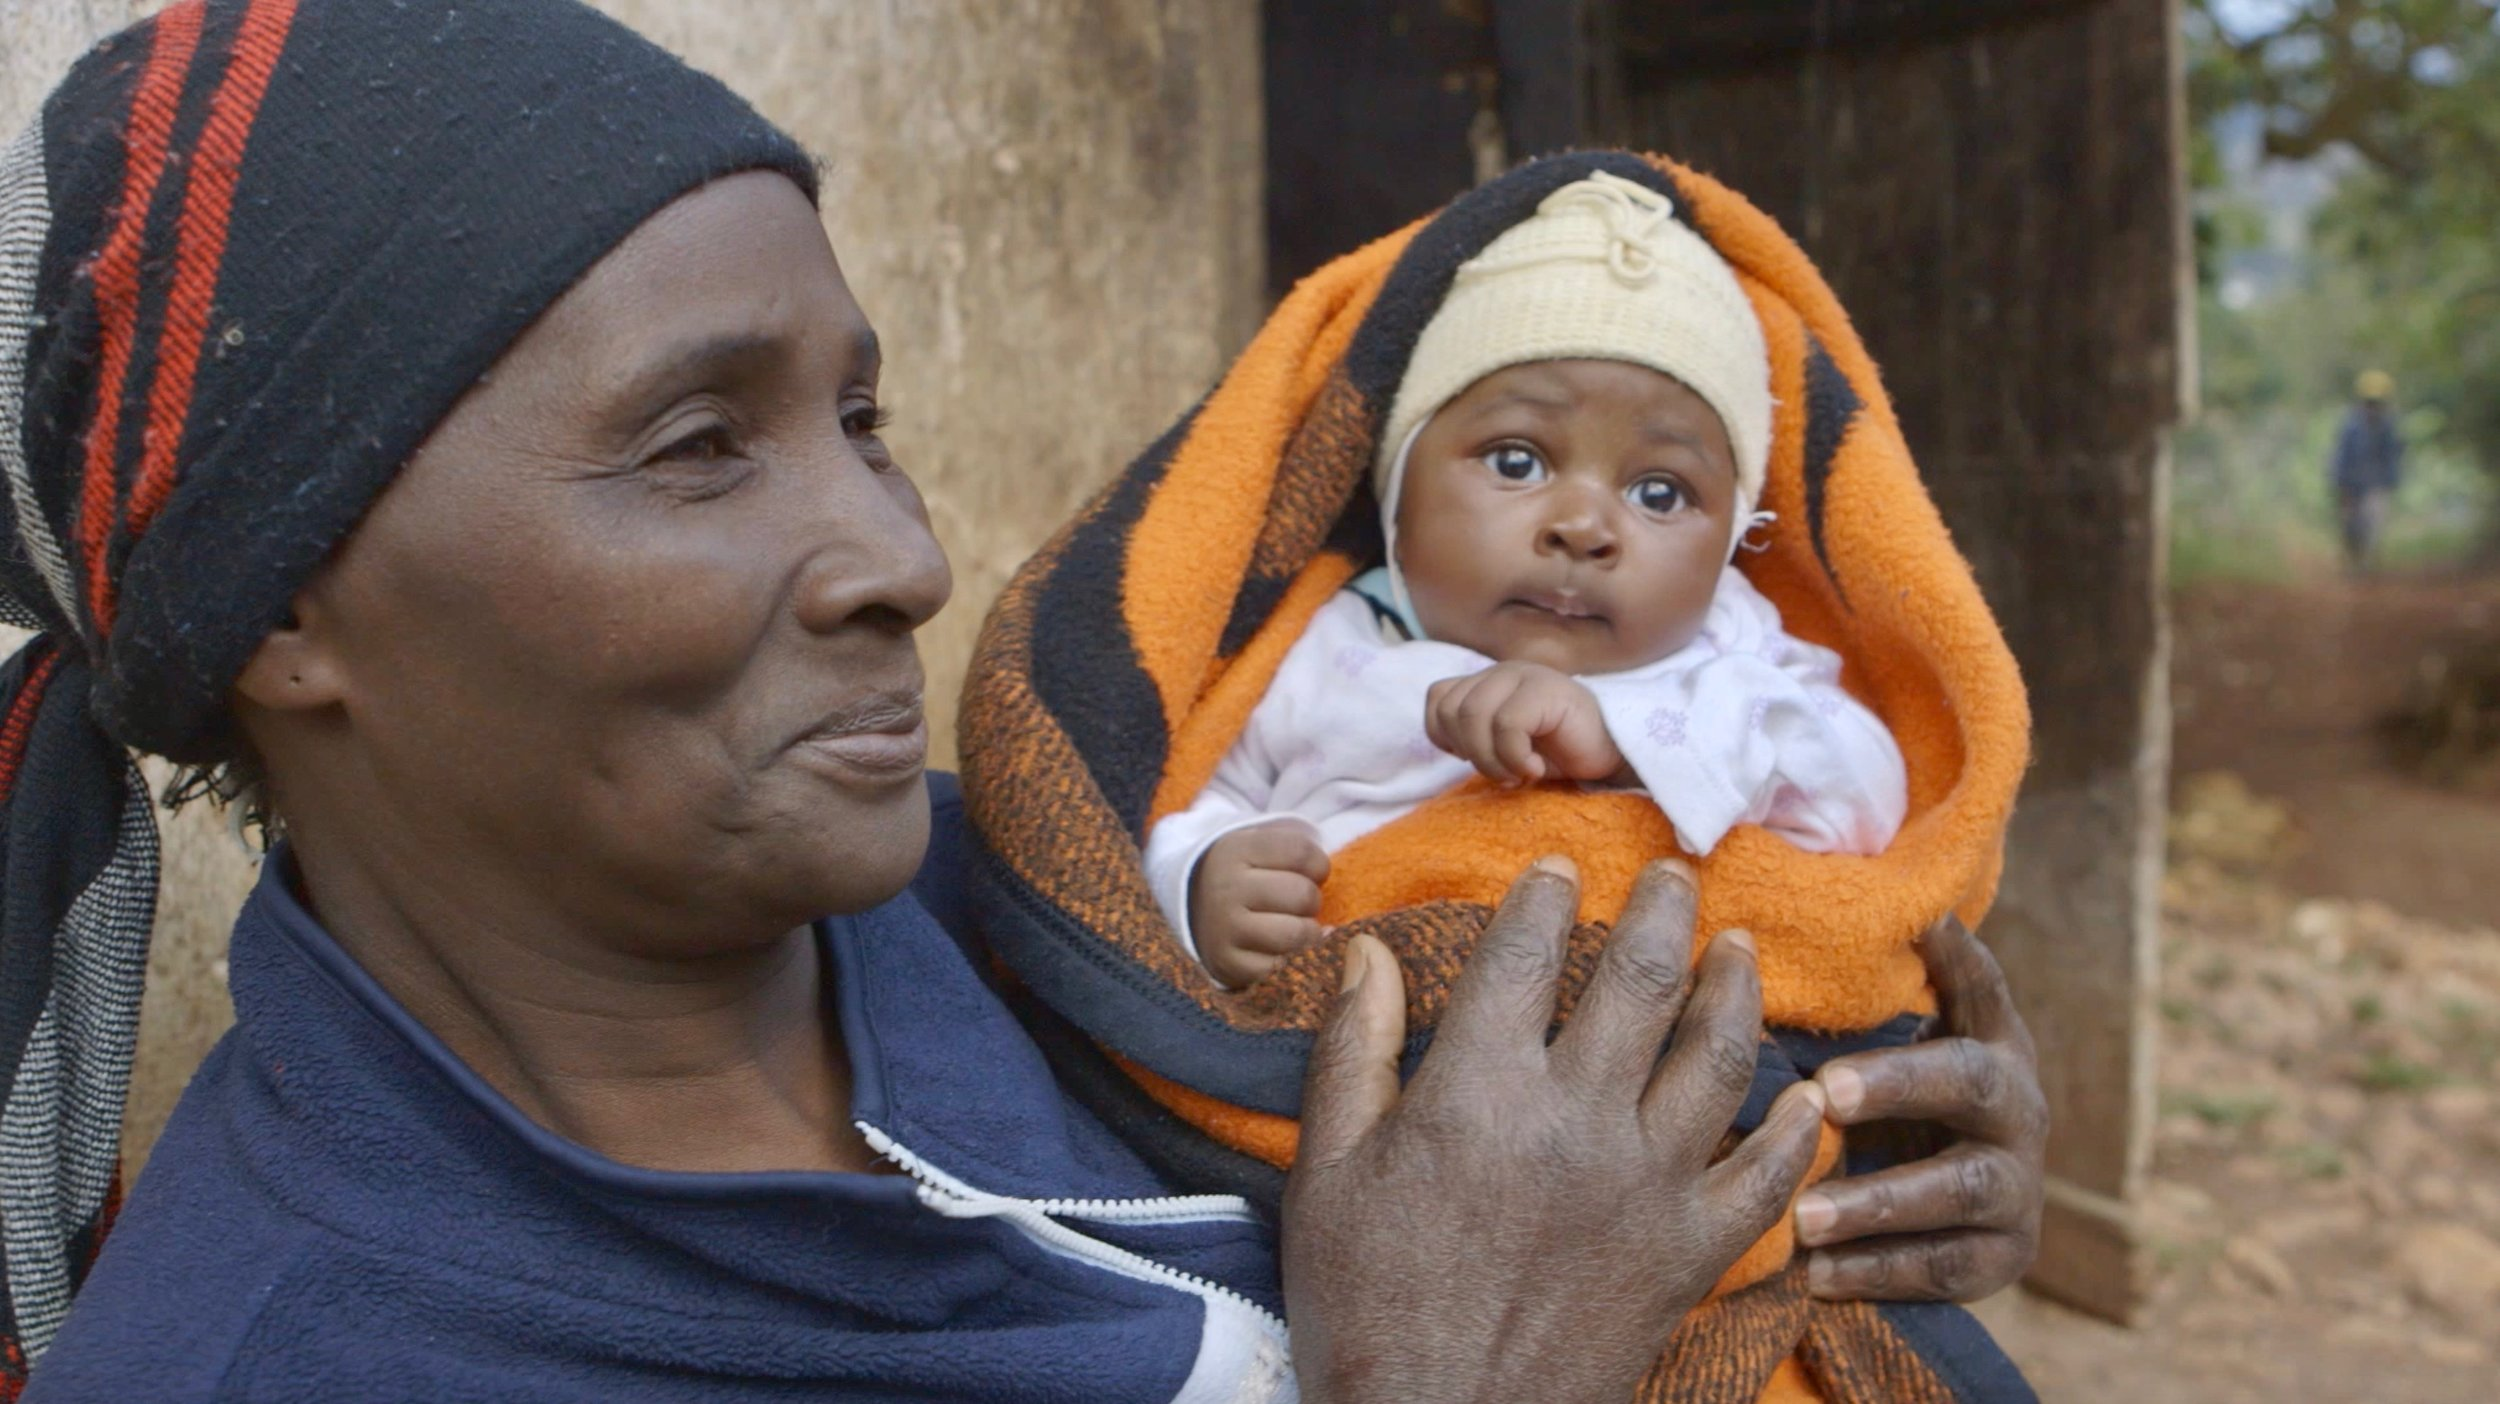 woman holding baby in traditional carrier